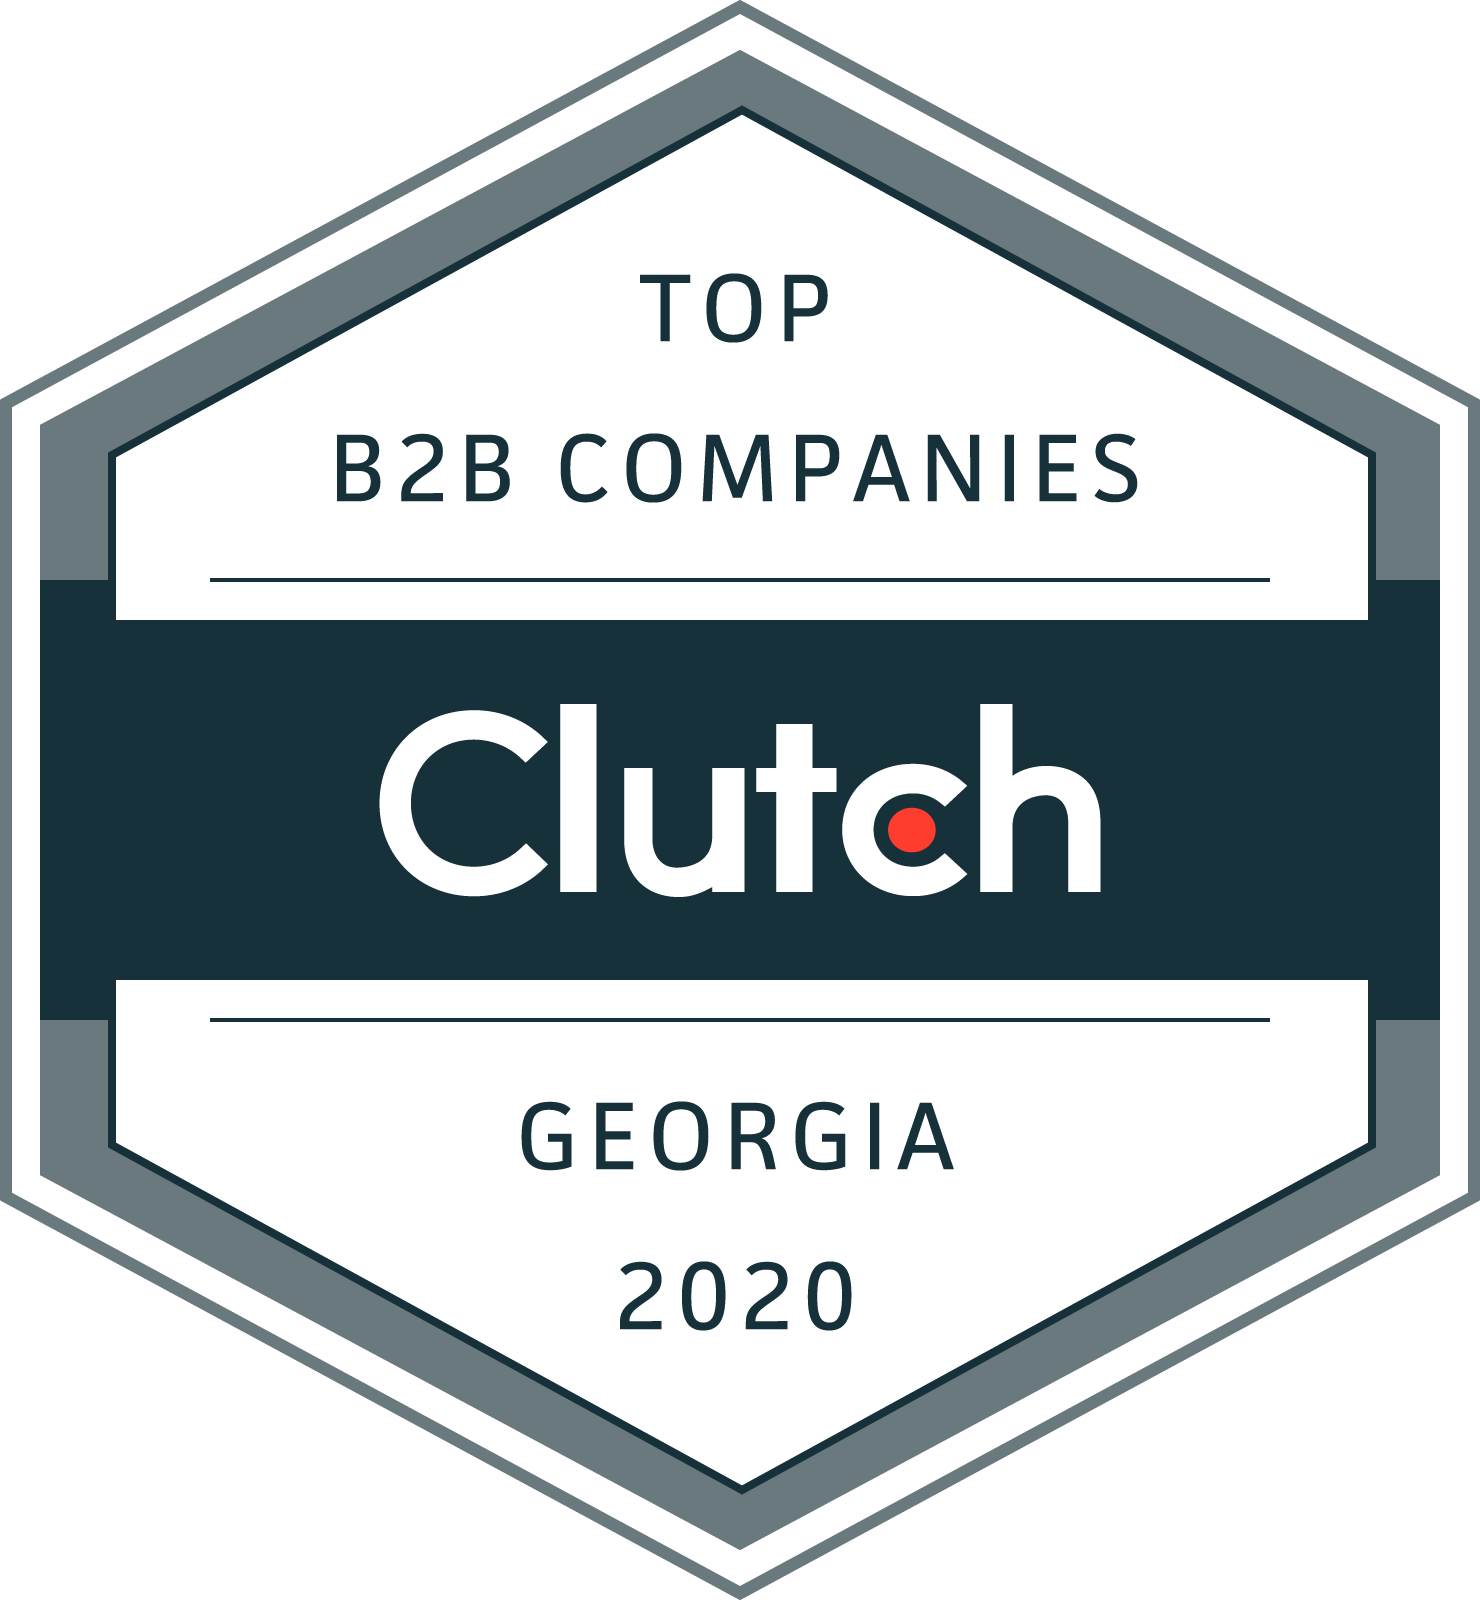 Top B2B Company in Georgia 2020